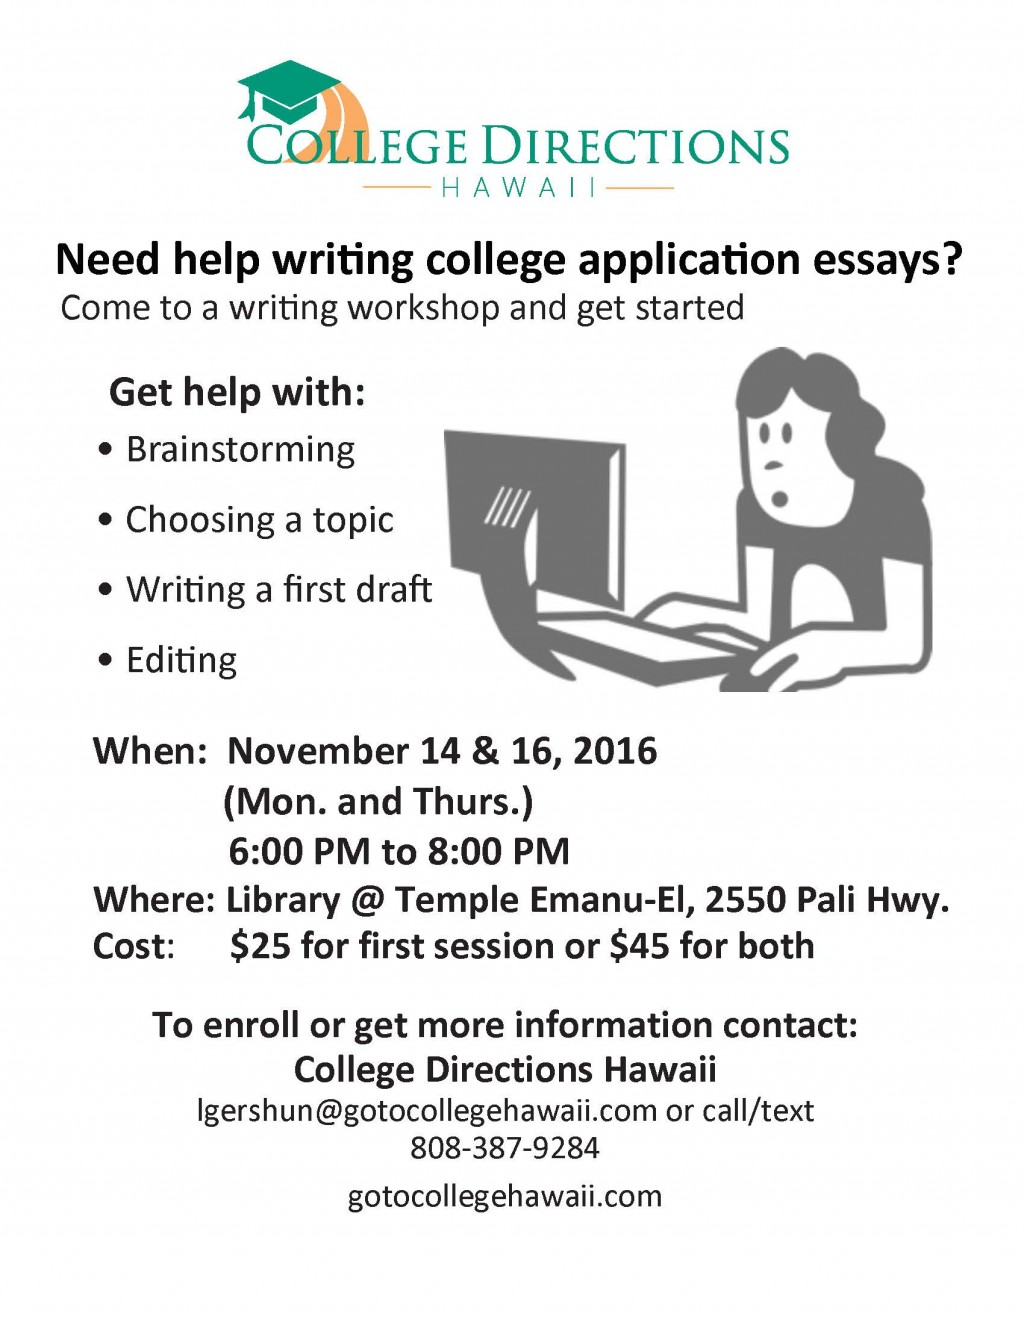 023 Essay Writing Workshop Flyer Example College Amazing Editing Best Services Application Free Checklist Large